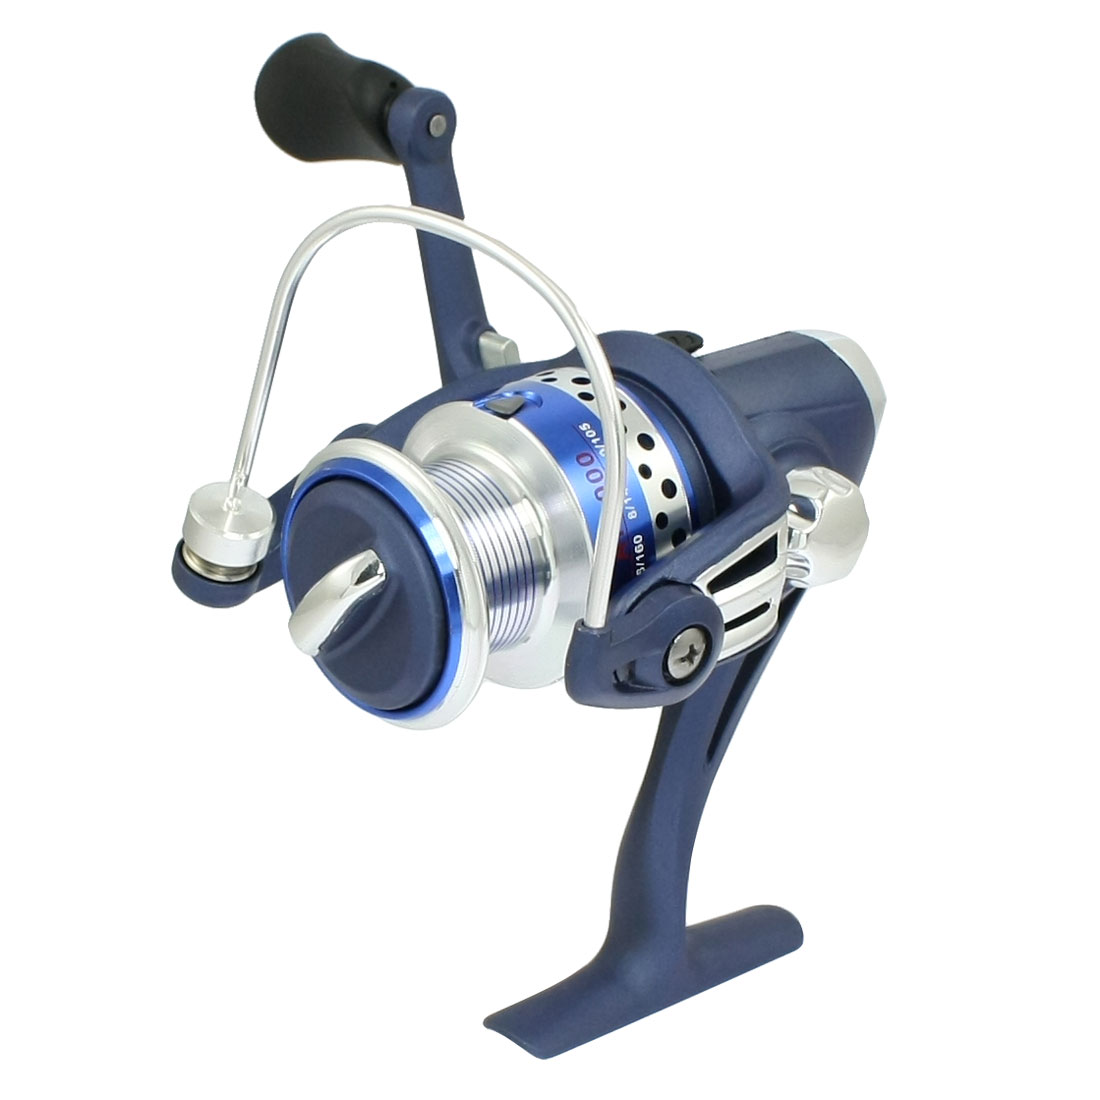 Foldable Handgrip Gear Ratio 5.5:1 3-Ball Bearings Fishing Spinning Reel AF2000